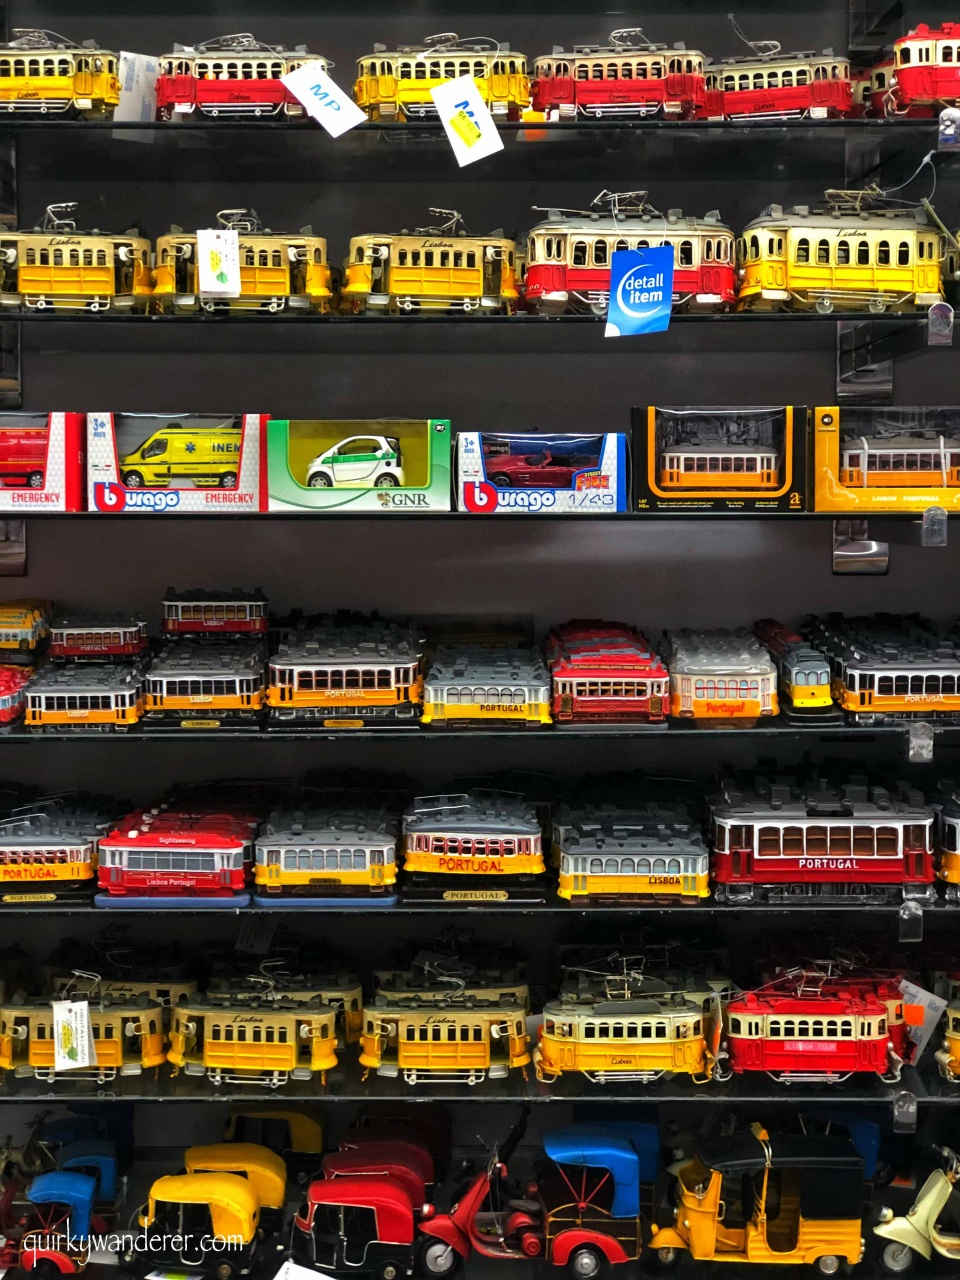 toy trams and vintage car models in Portugal